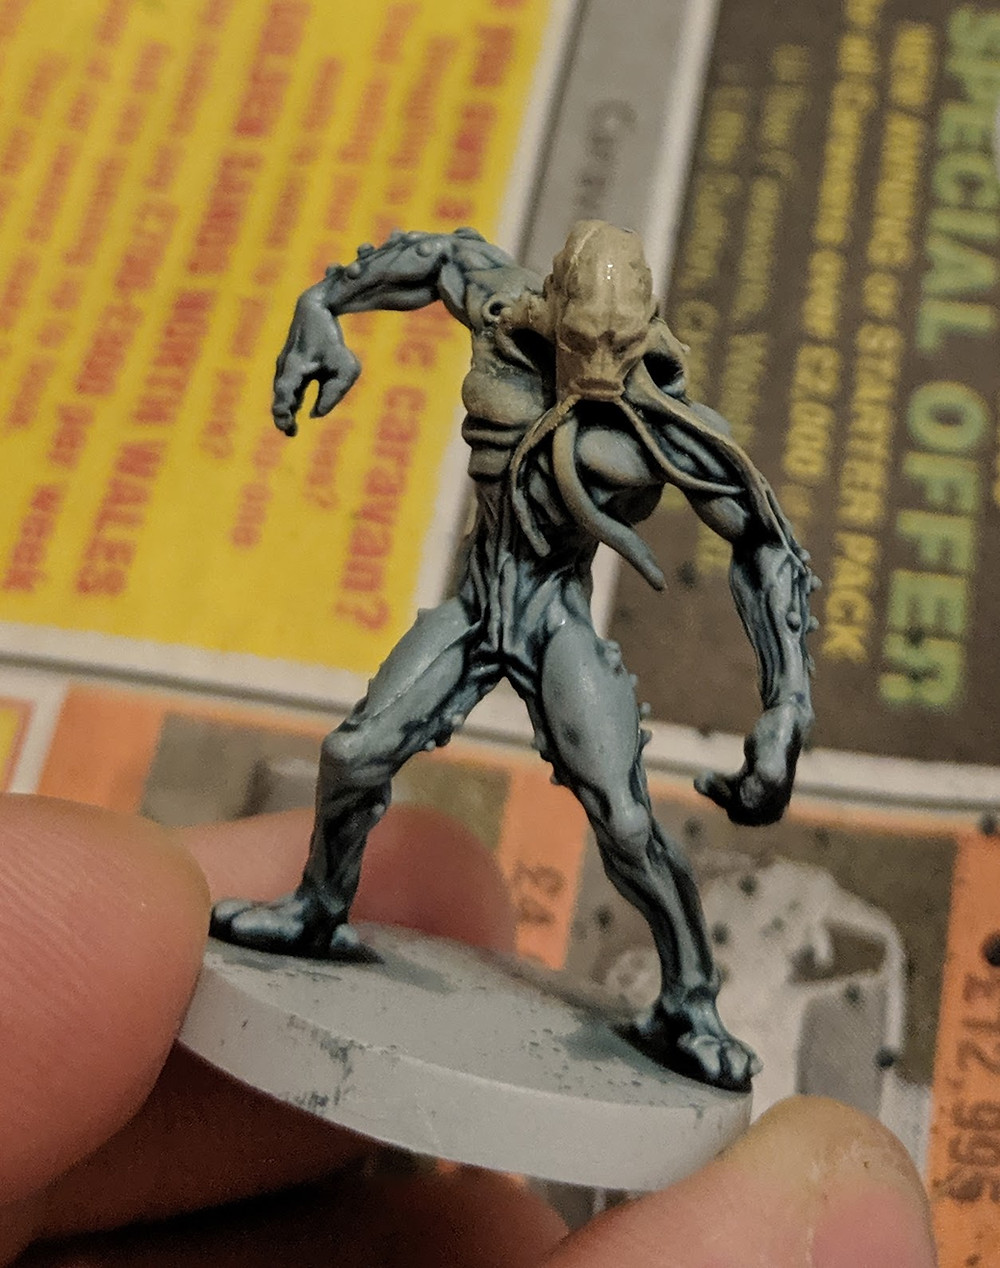 Zombicide Invader - Worker Xeno - Jack Bone & Lahmian Medium